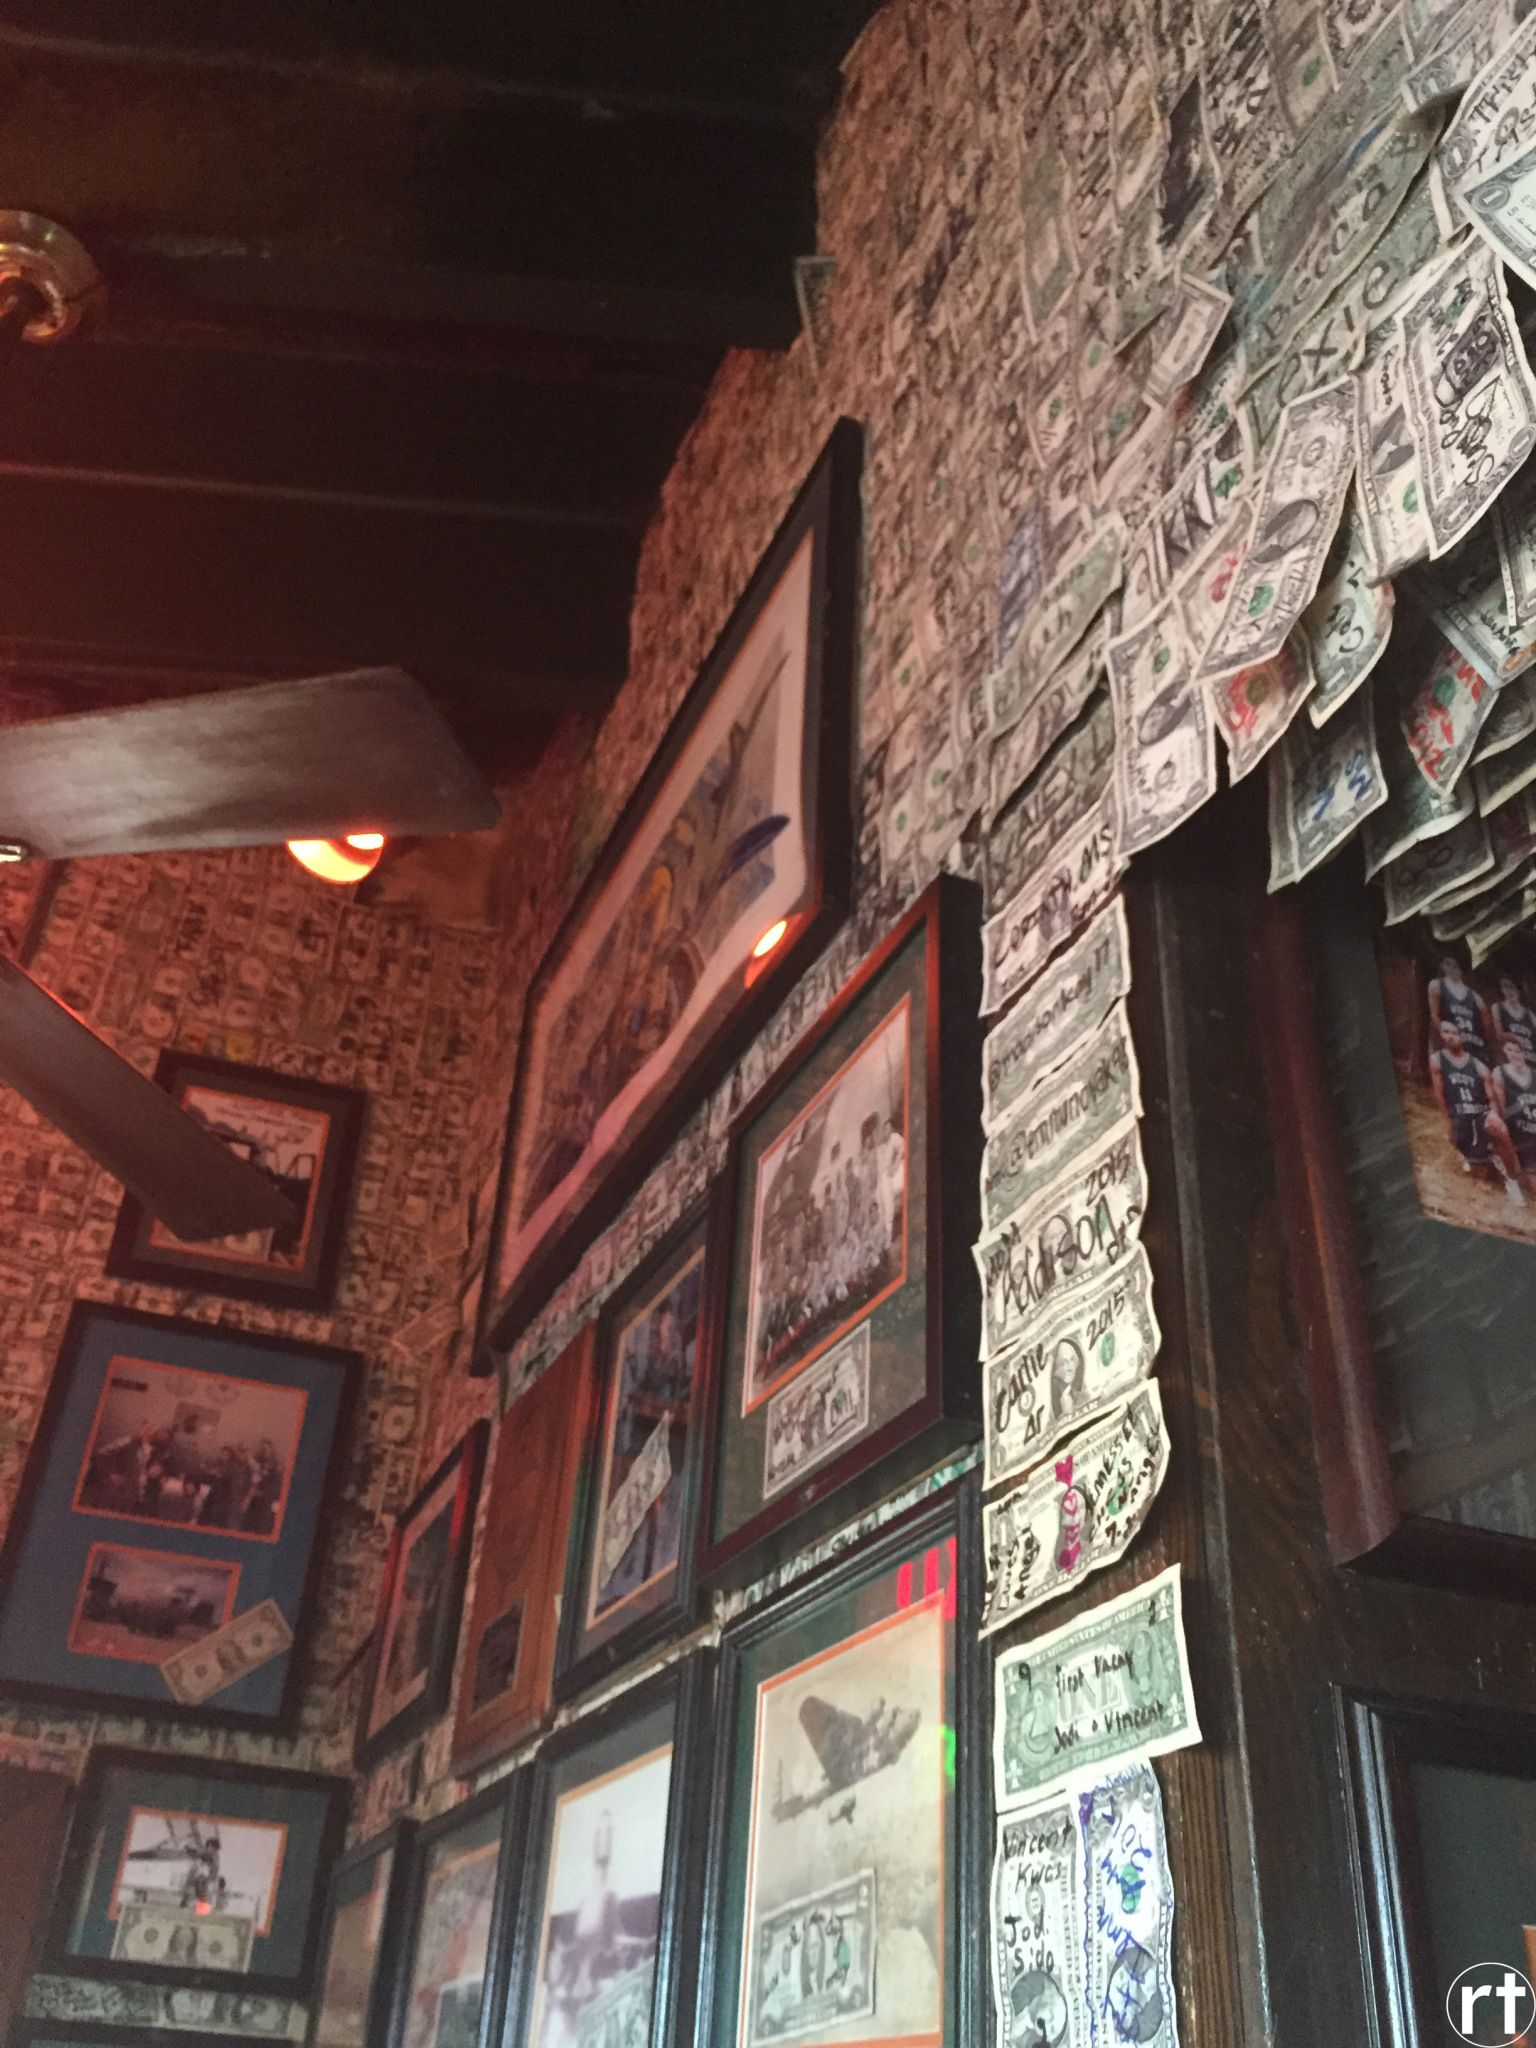 Where to Eat in Destin, Florida (With images) | Destin ...